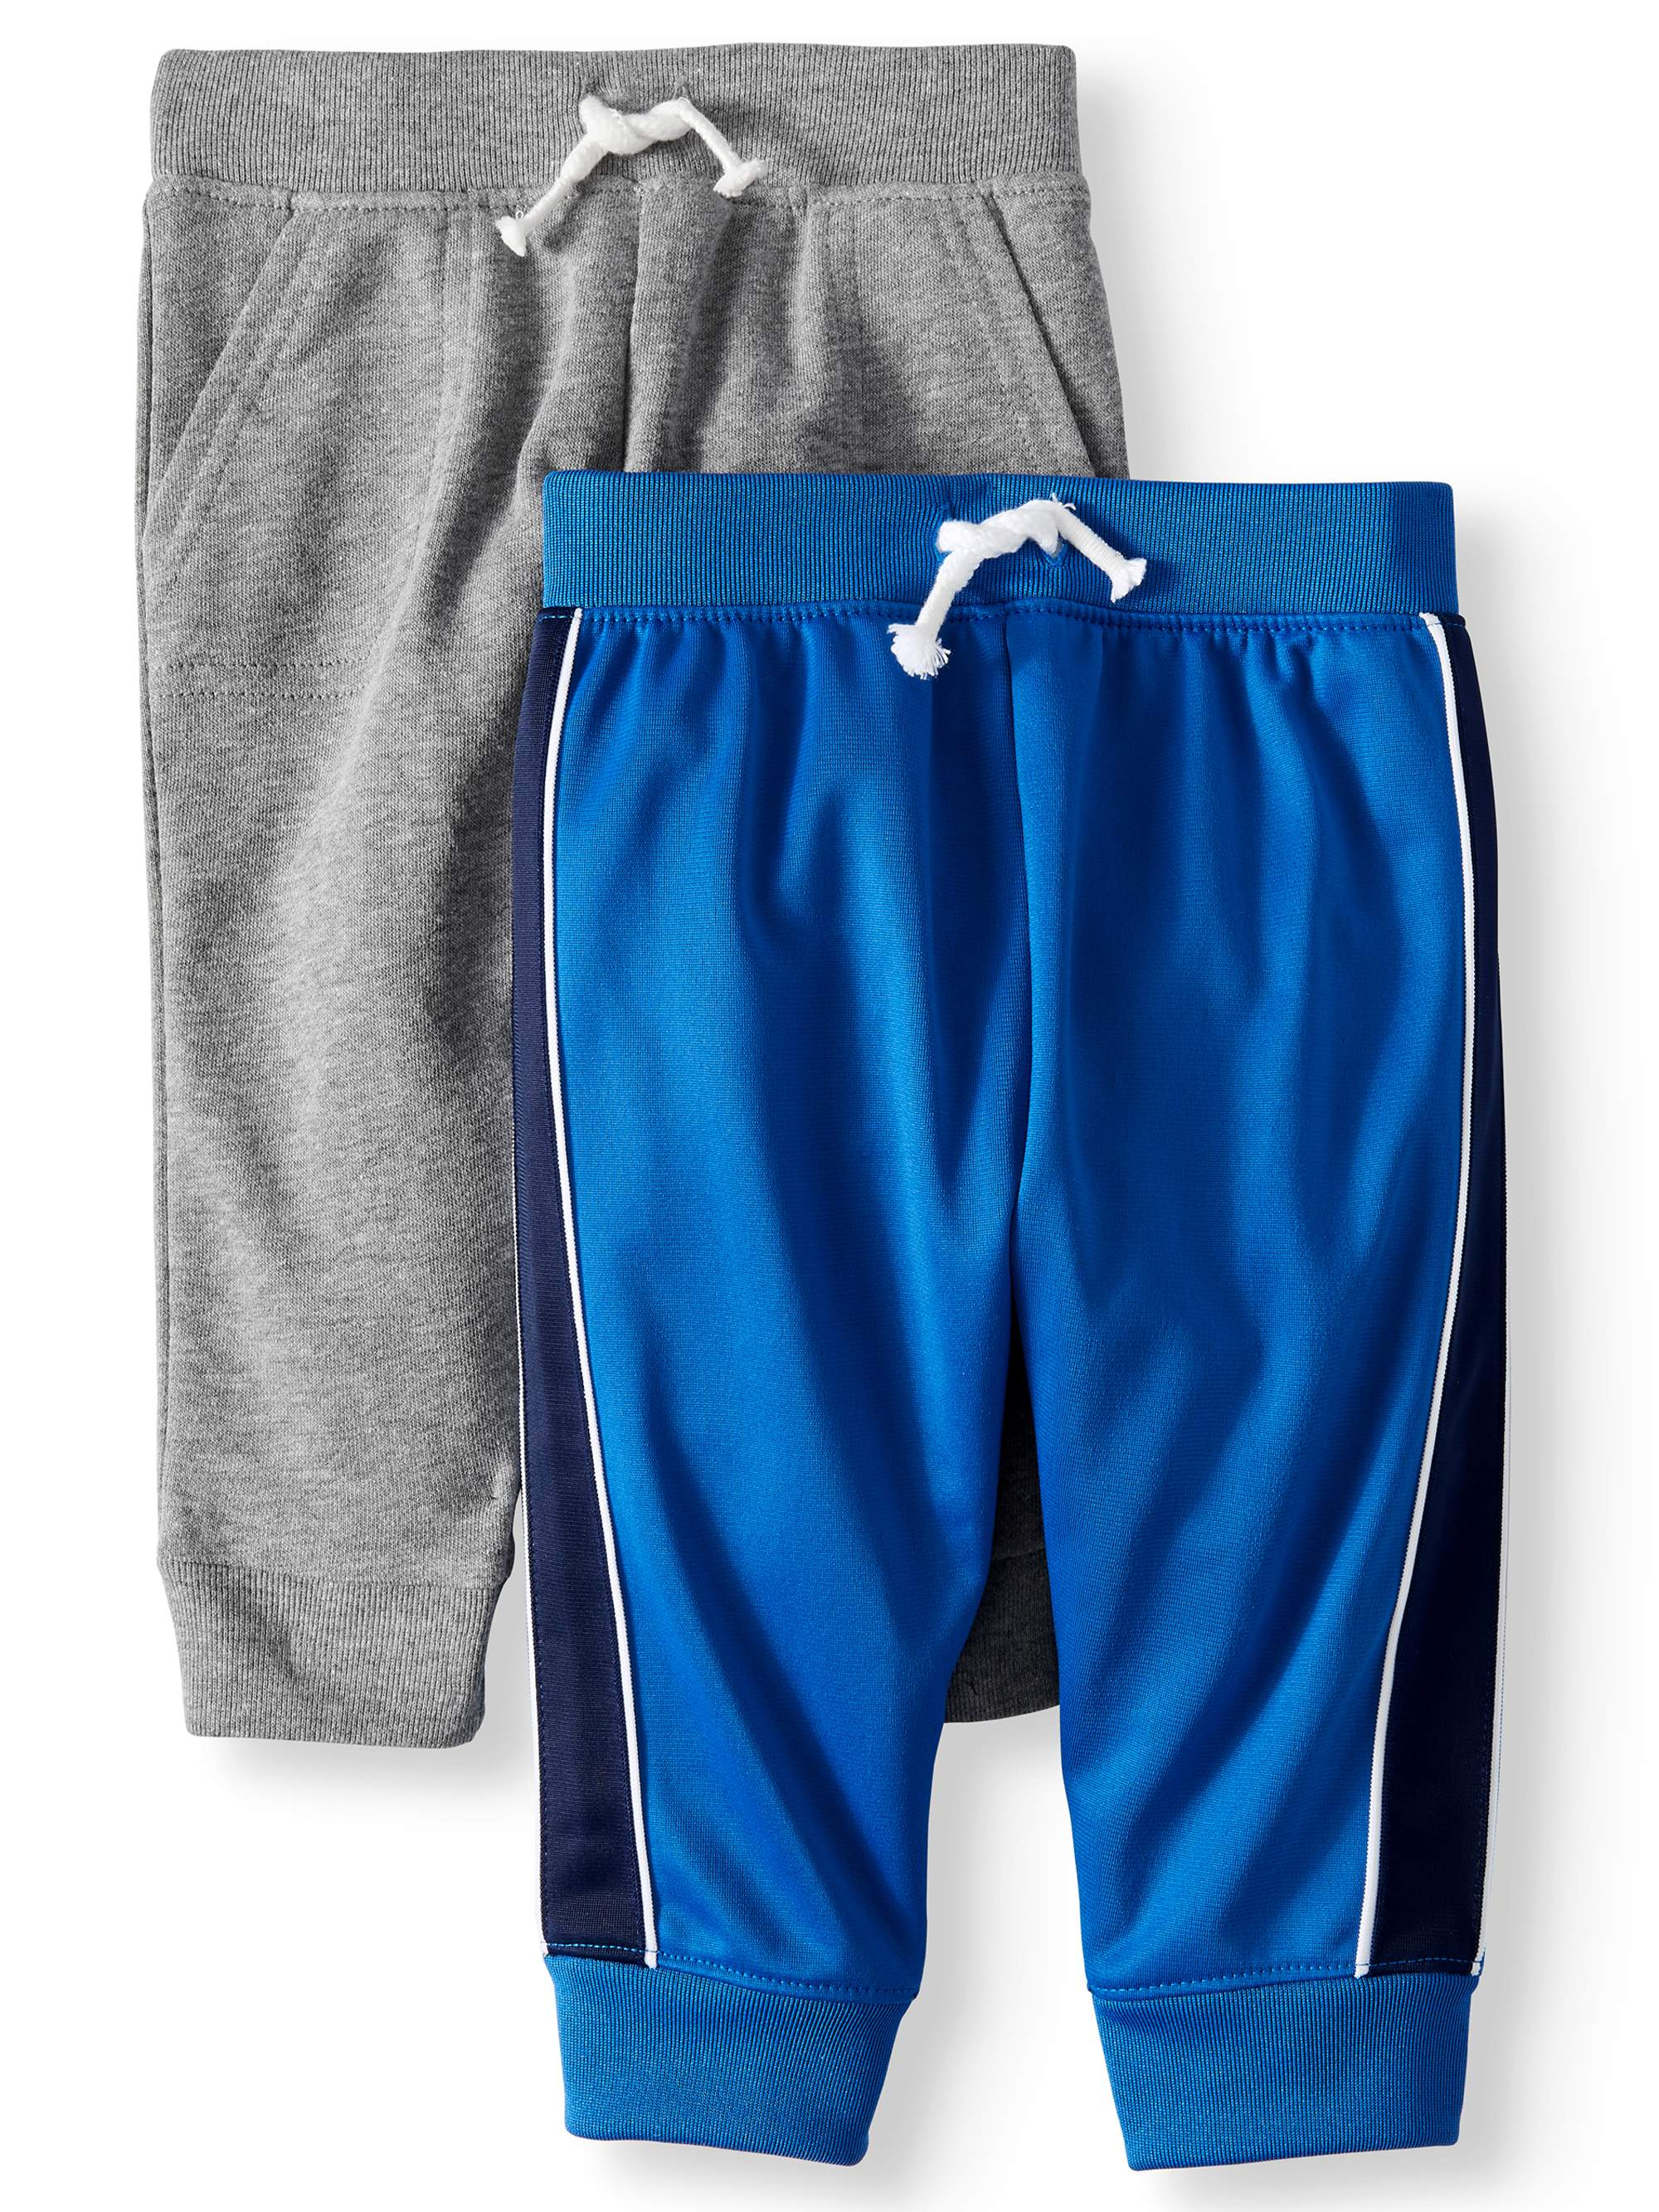 Garanimals French Terry Jogger Pants & Tricot Taped Jogger Pants, 2-pack (Baby Boys)